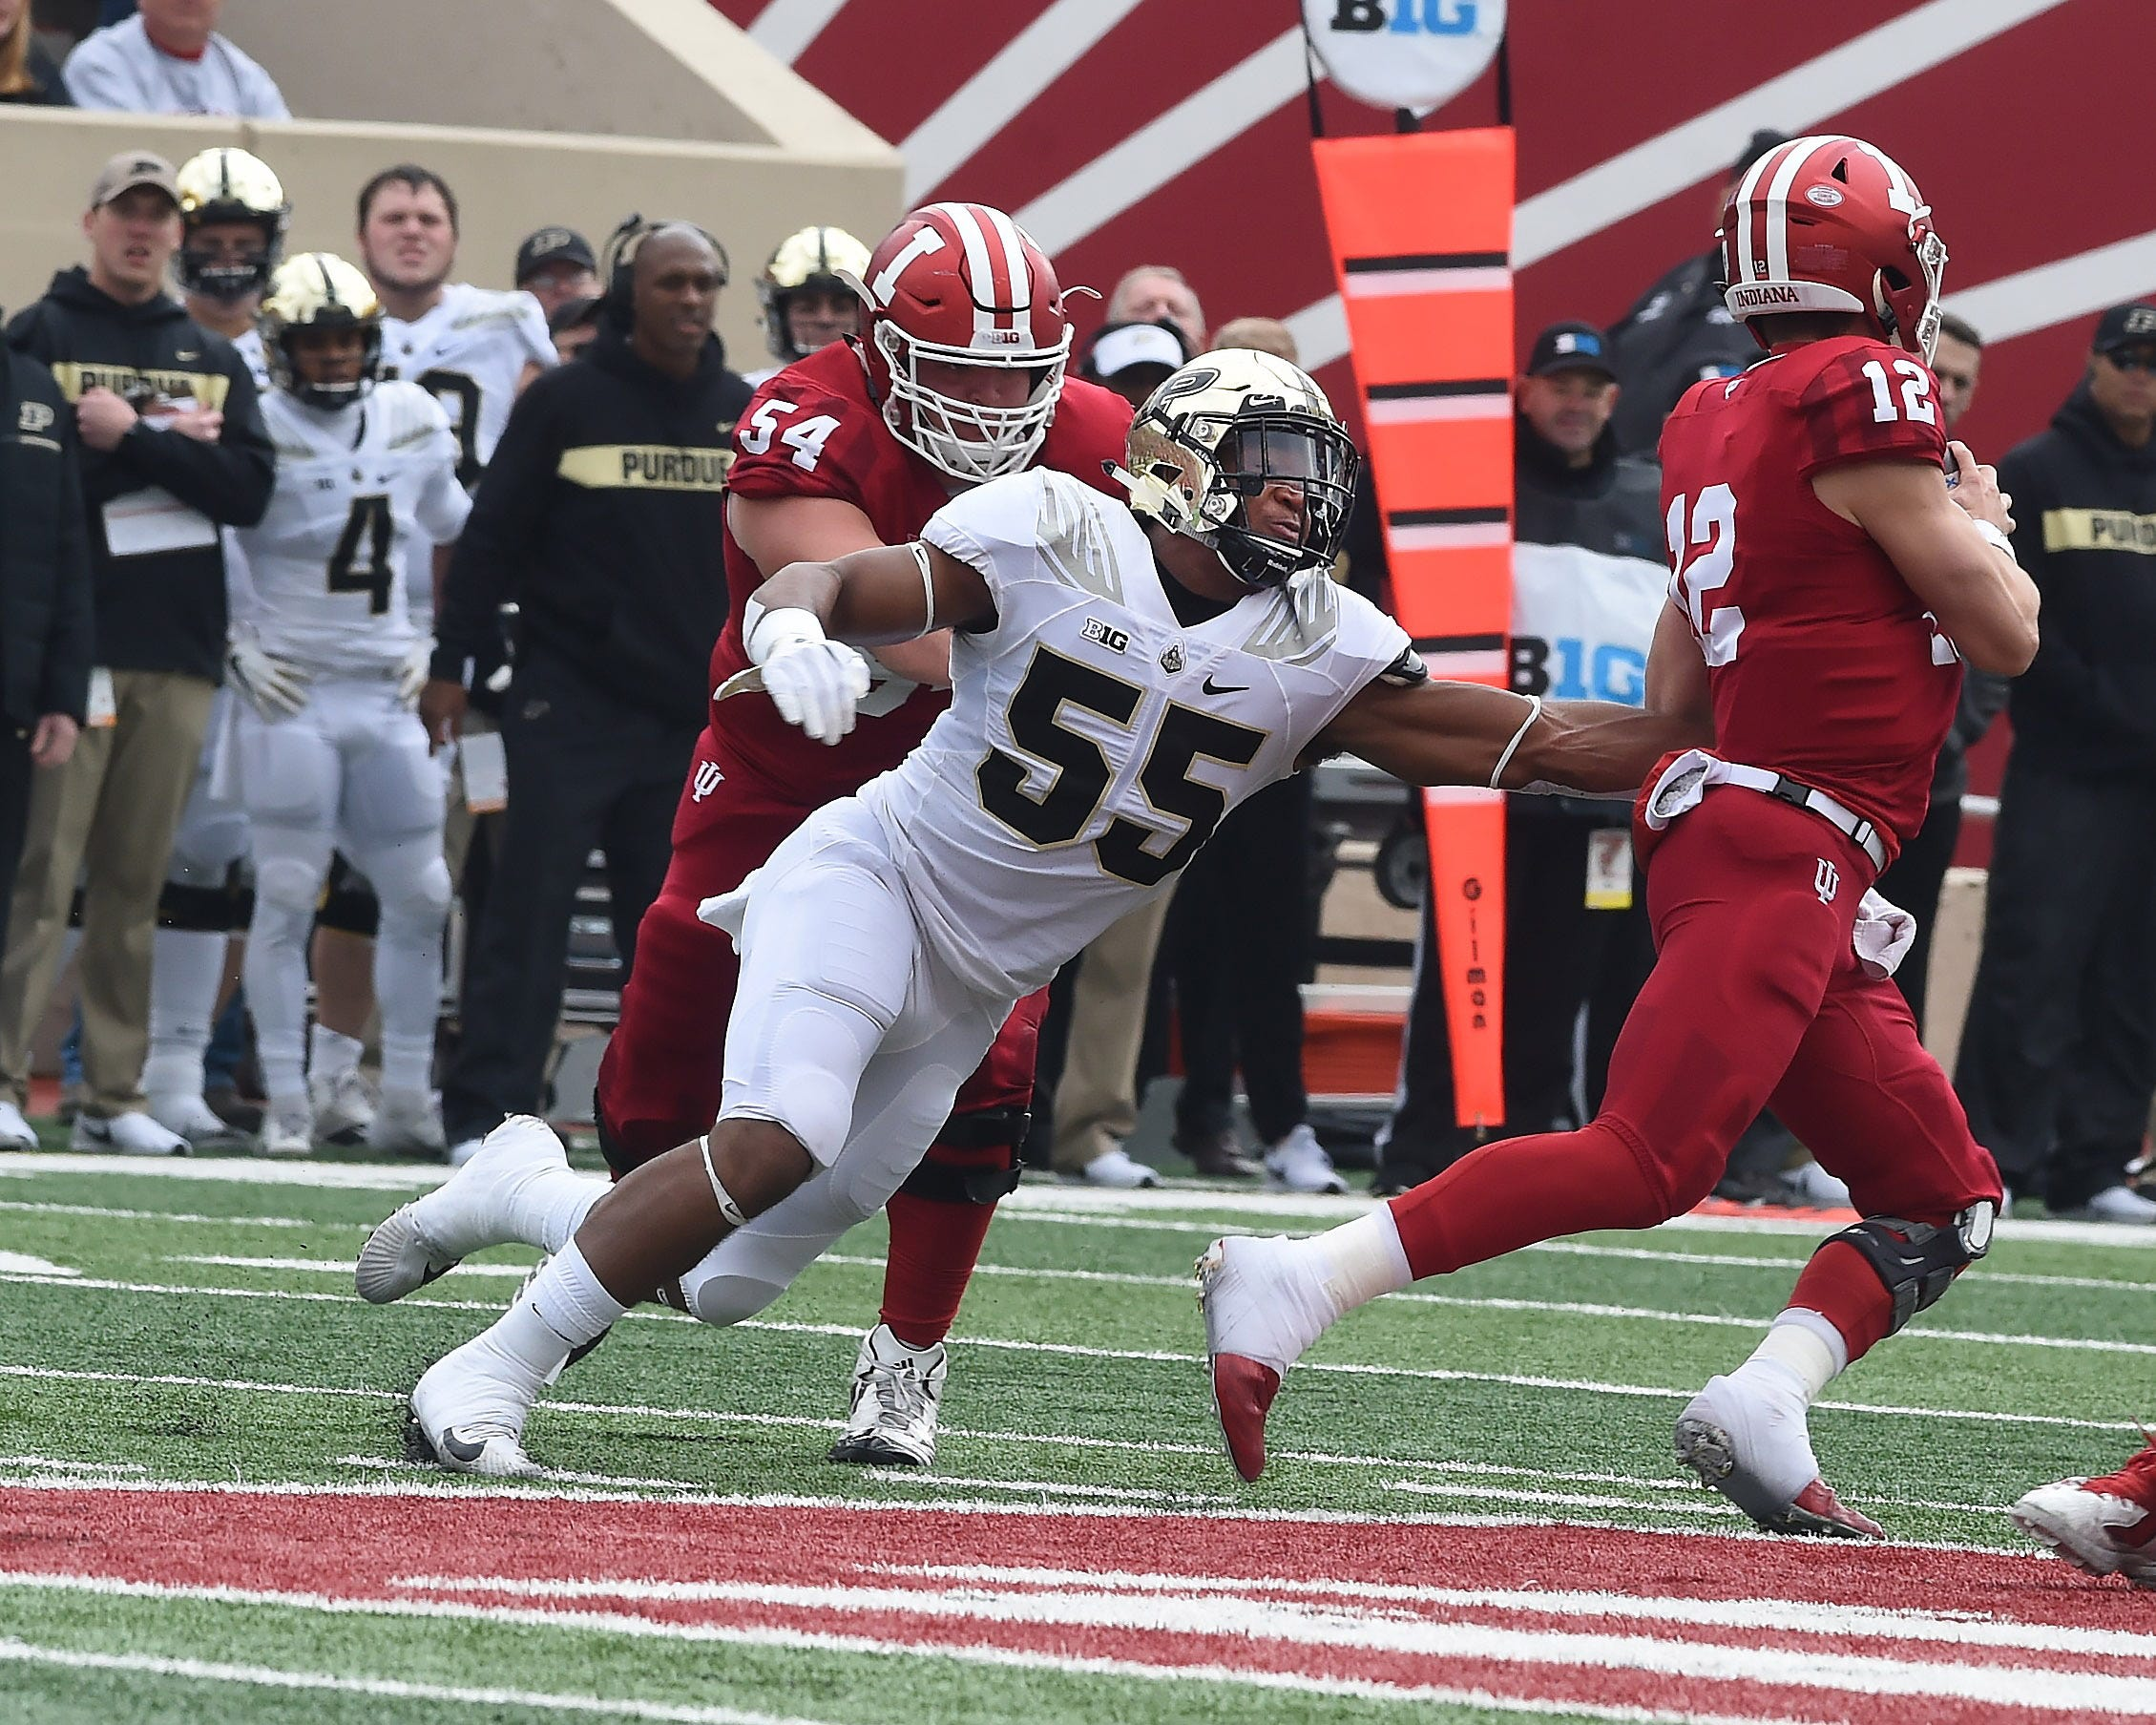 The Boilermaker faithful enjoyed a beautiful day in IU's Memorial Stadium as Purdue retains the Bucket for 2018. Derrick Barnes